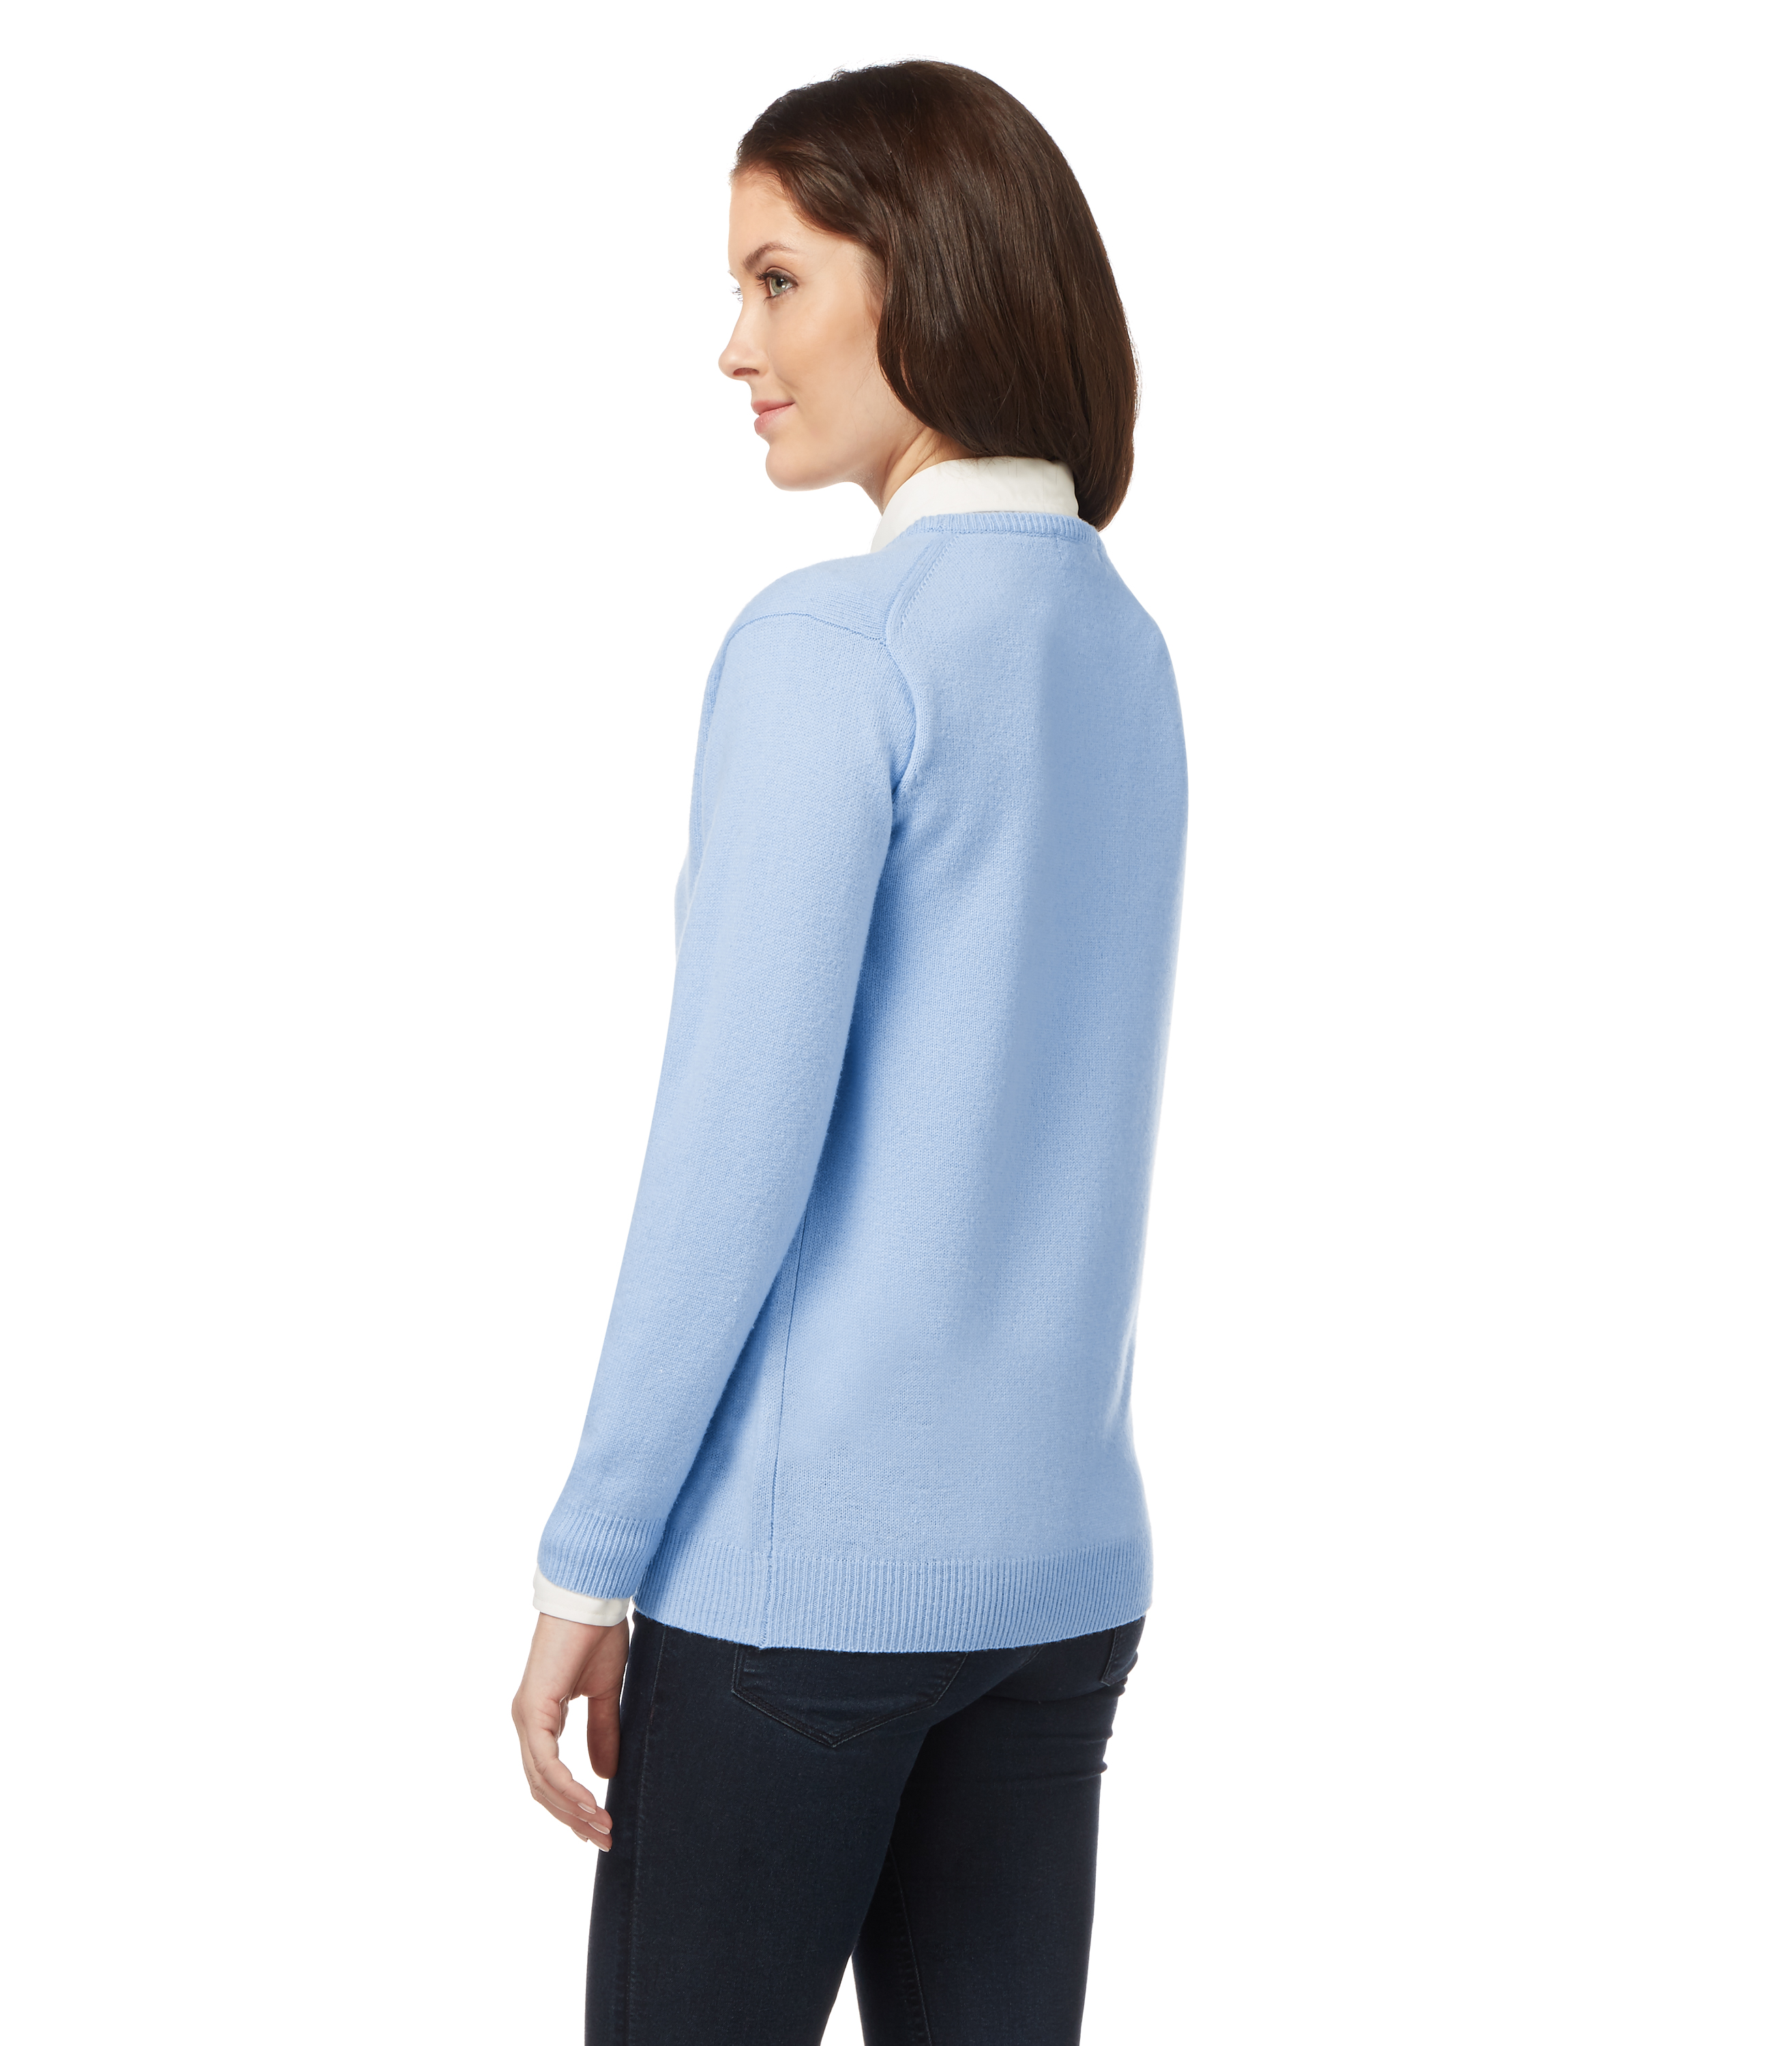 Women's Sweaters: Cardigans, Pullovers & Shrugs. From lightweight sweaters to the heavier knits of winter sweaters find your next winter-weather style with dressbarn. Not finding your size? Shop Plus Size Tops & Petite Tops. Your Favorite Store West Towne Mall Madison, wi.